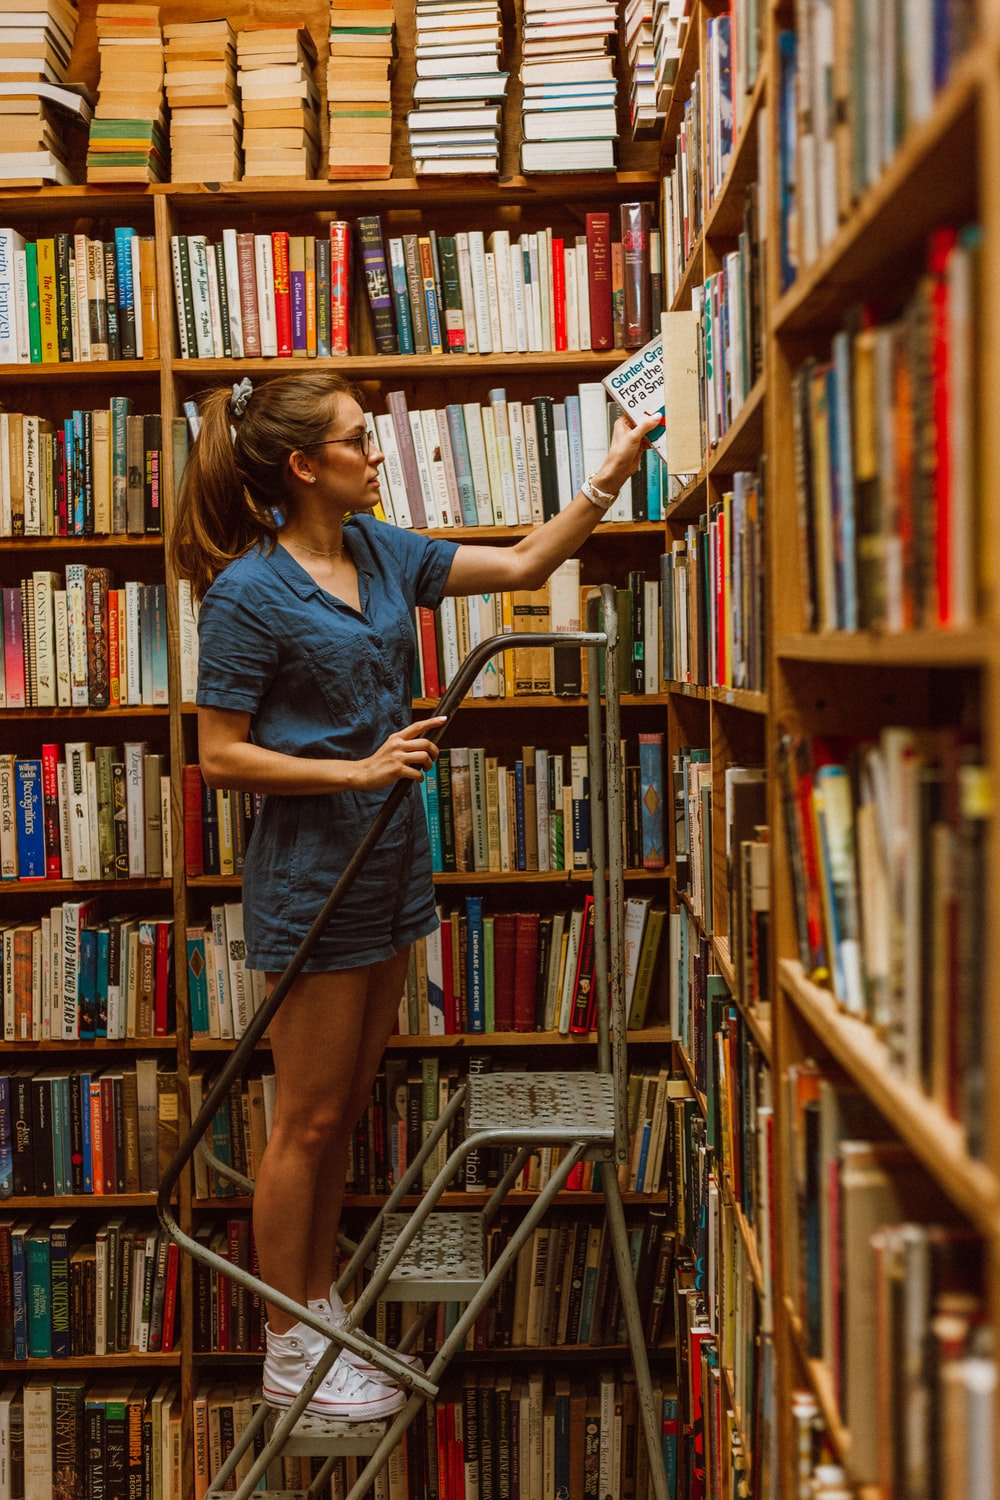 woman steps on ladder while holding book